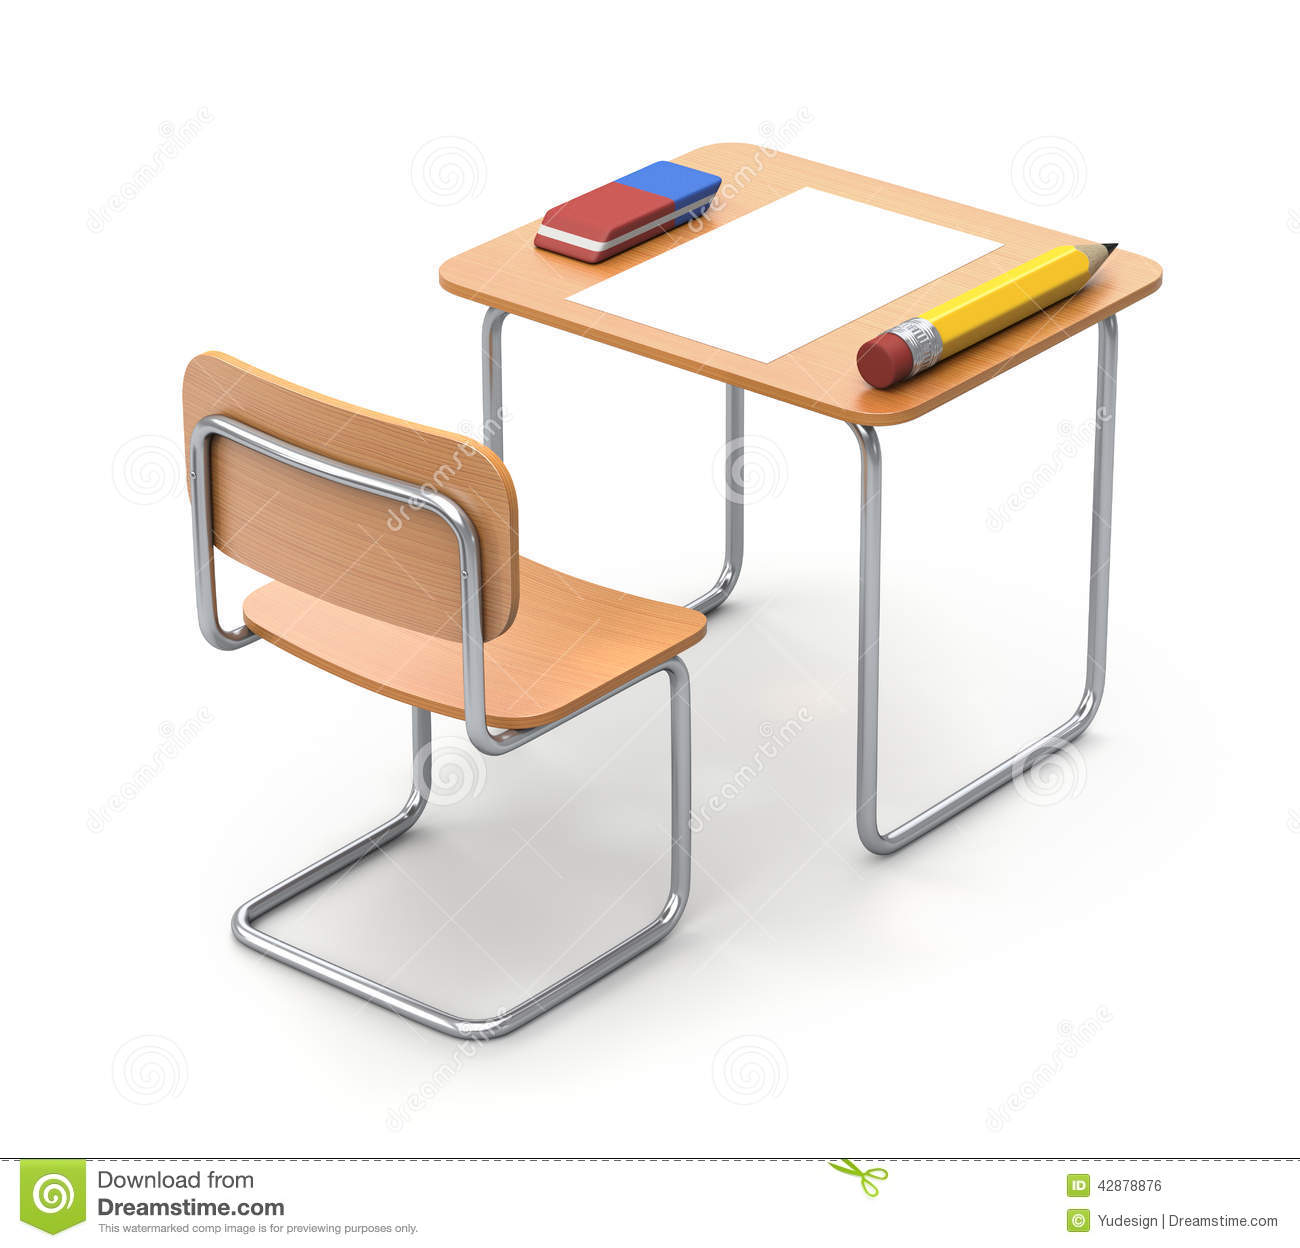 school desk with the pencil and eraser stock illustration image 42878876. Black Bedroom Furniture Sets. Home Design Ideas